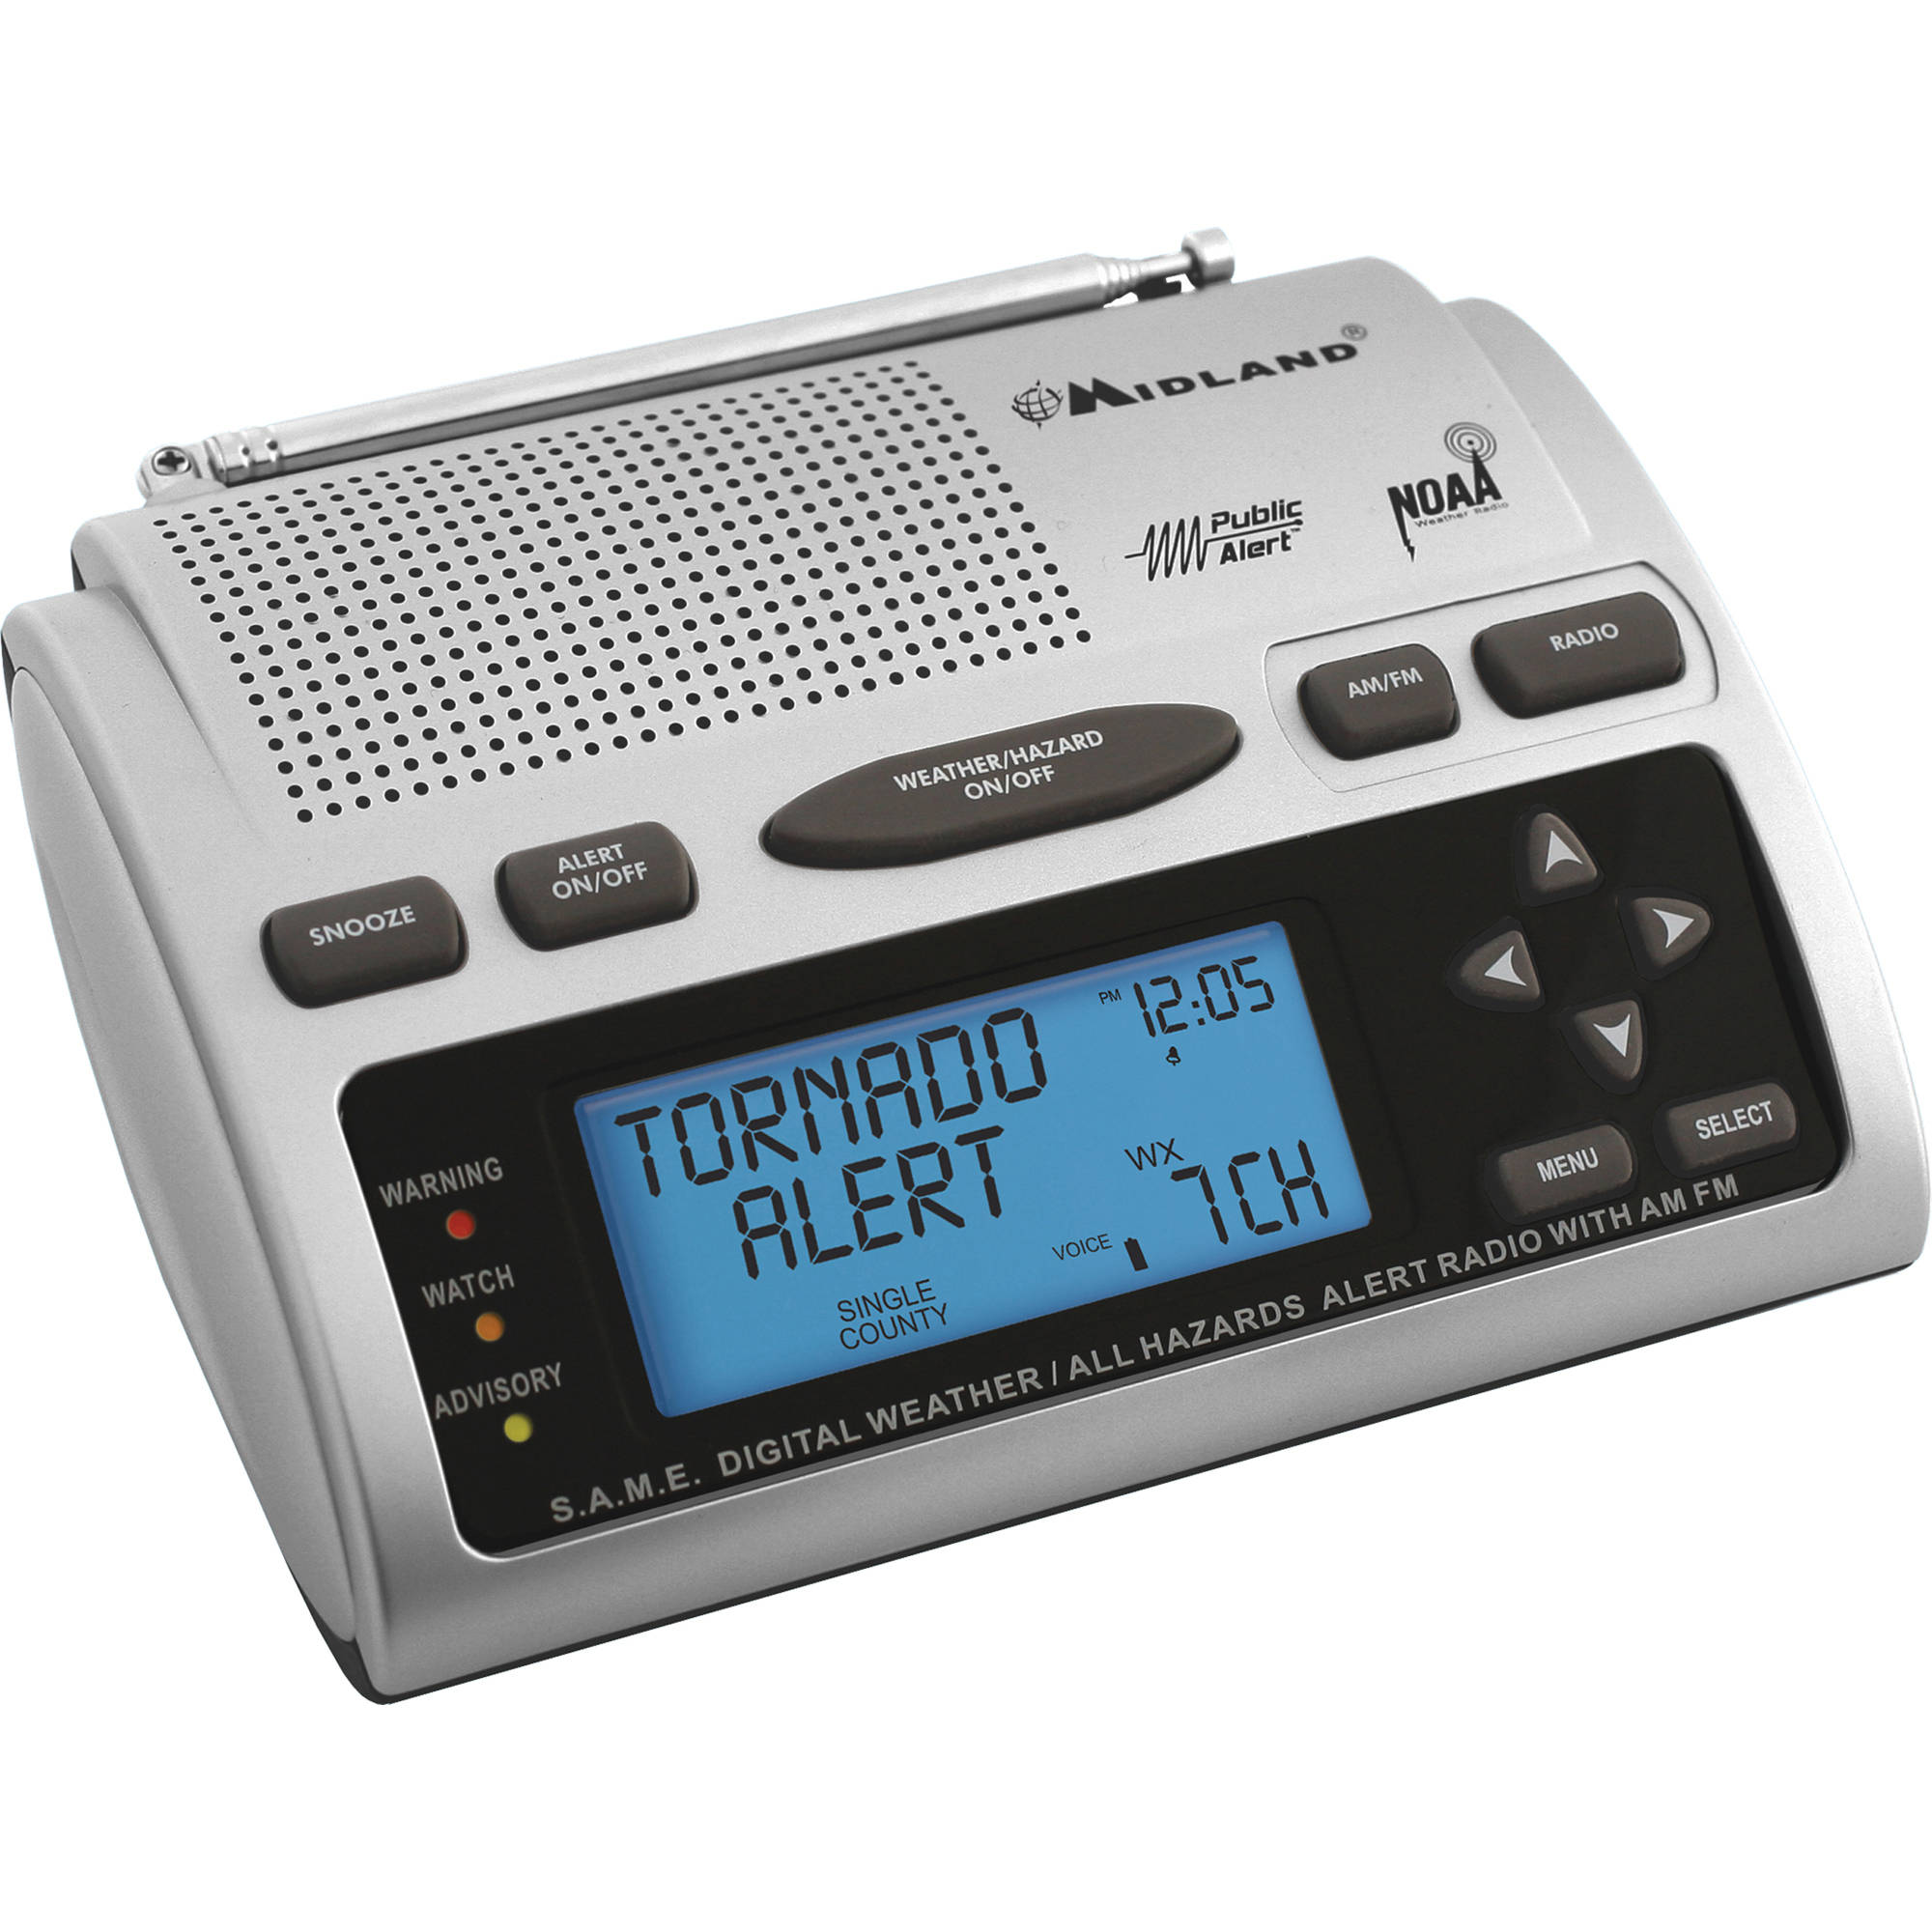 Midland wr-300, noaa weather alert radio, excellent condition.